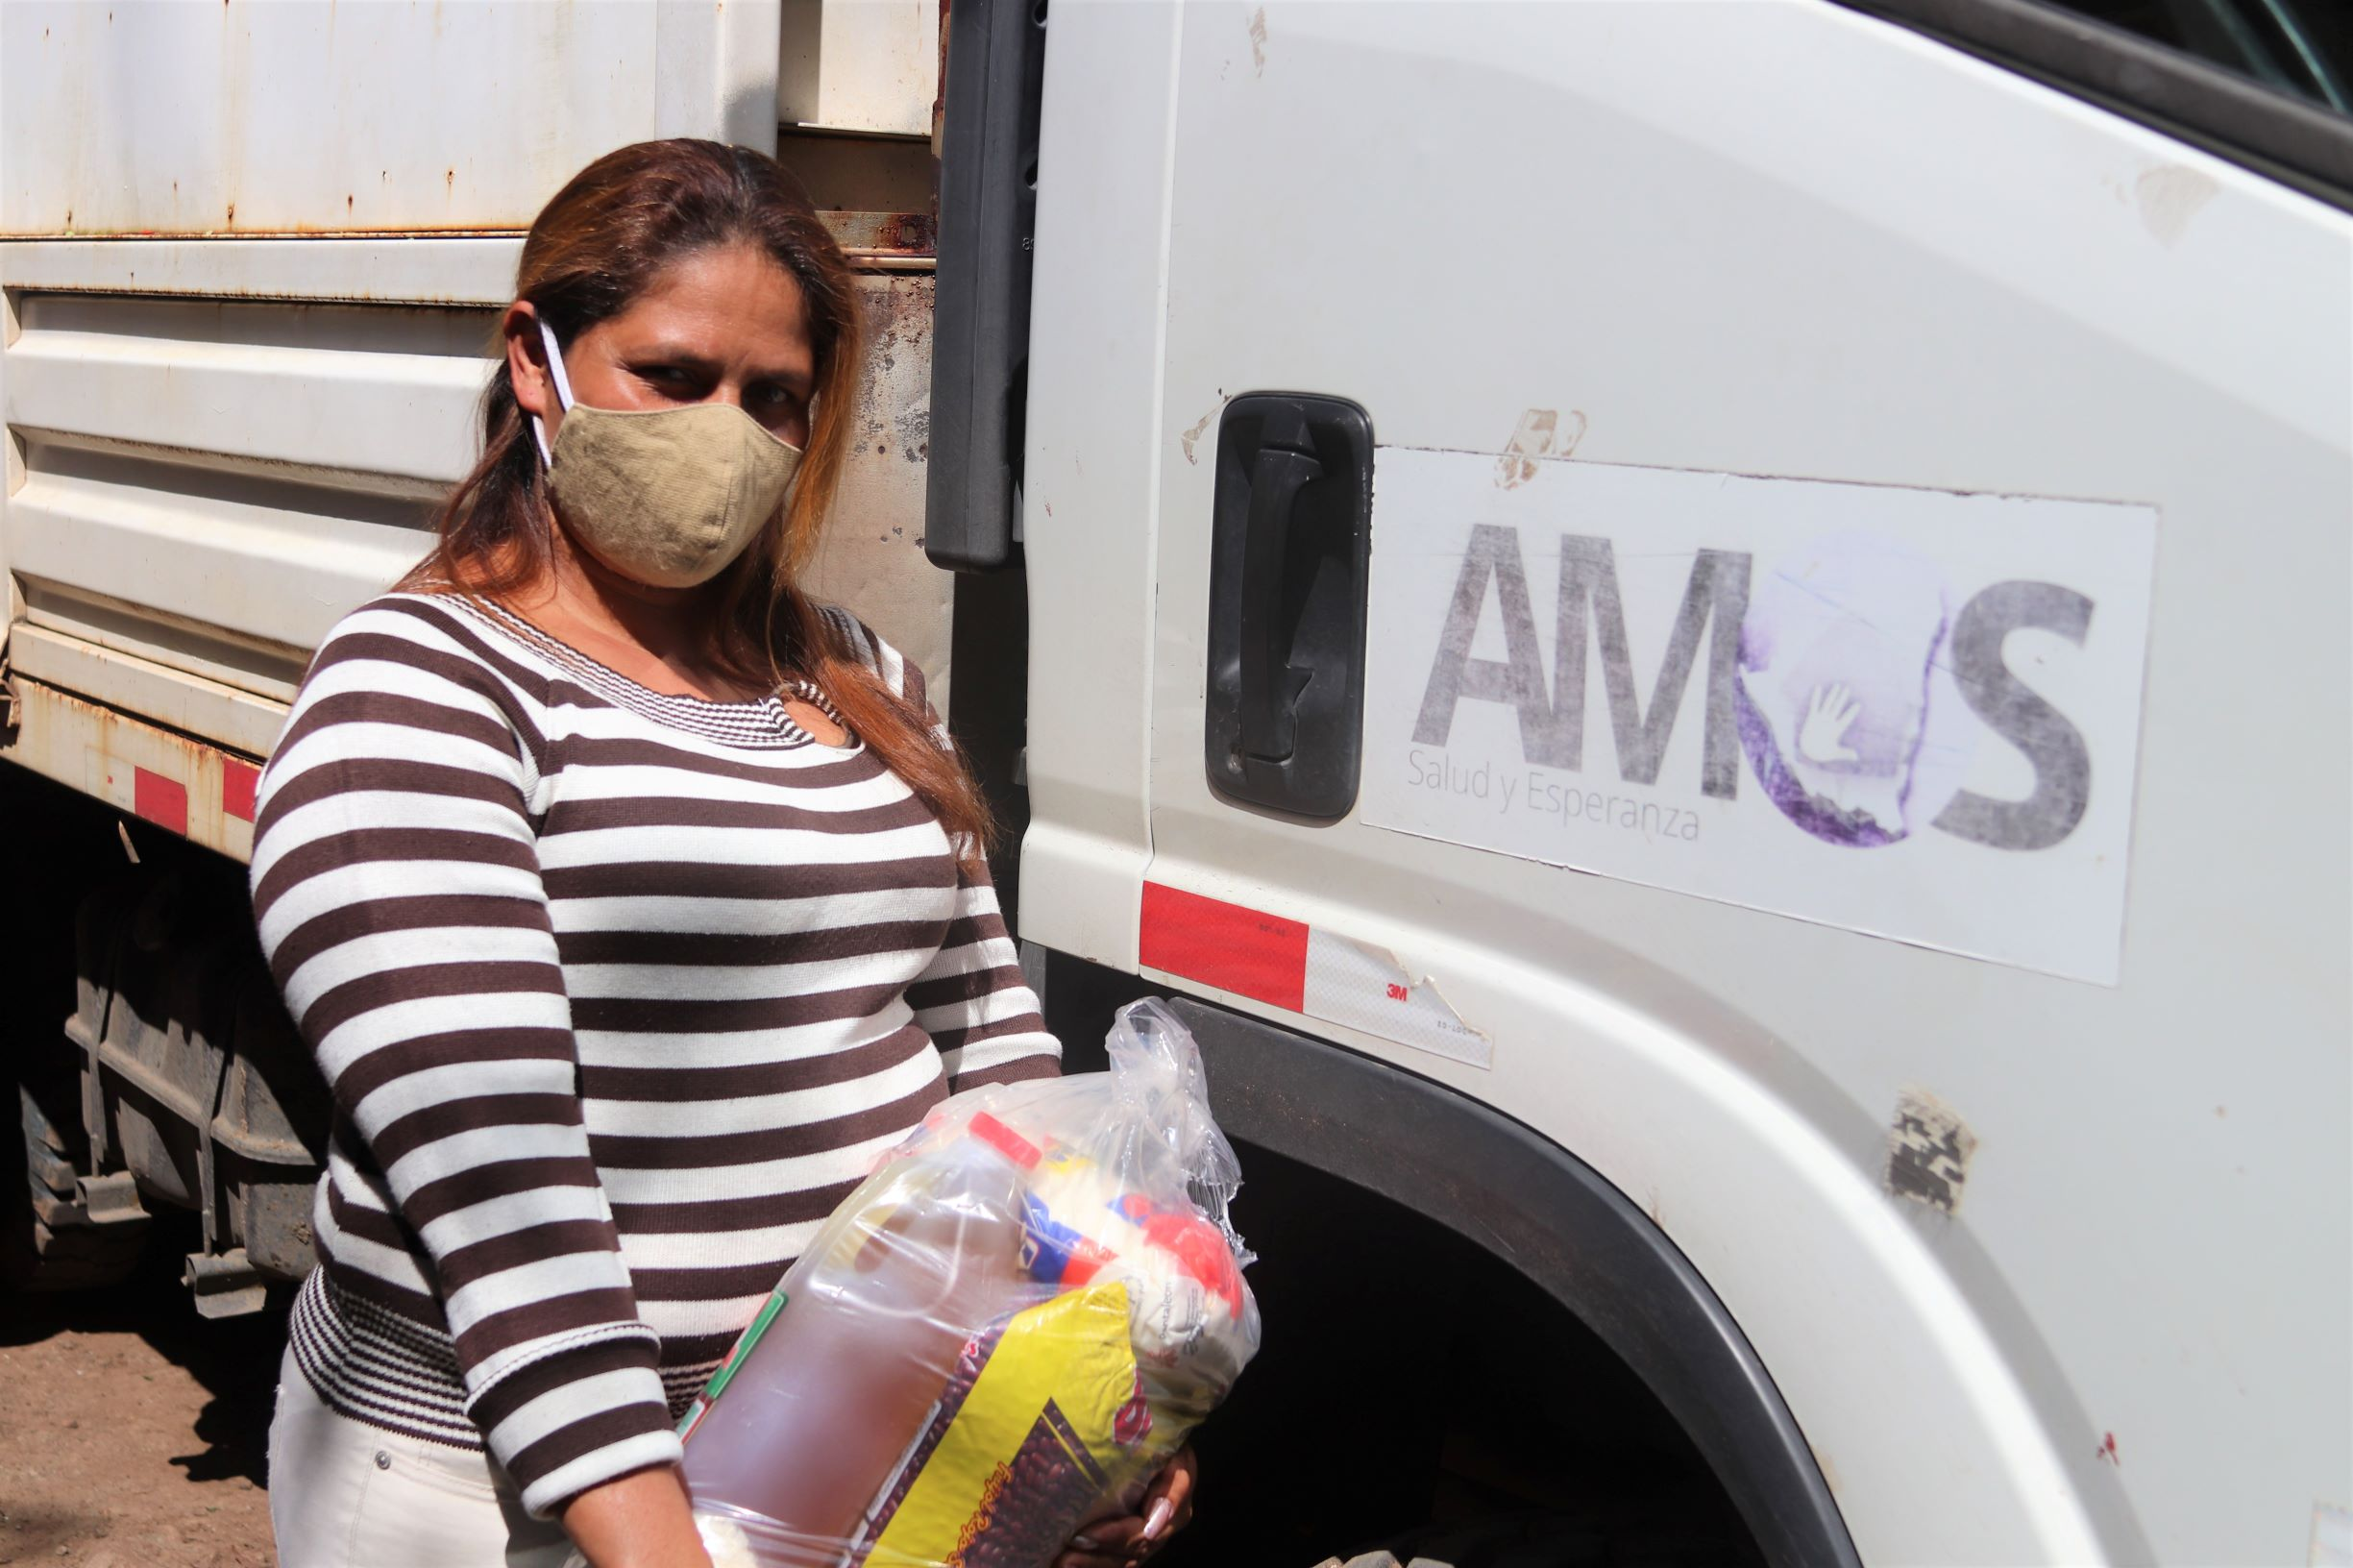 A woman stands by a truck holding a bag of food.